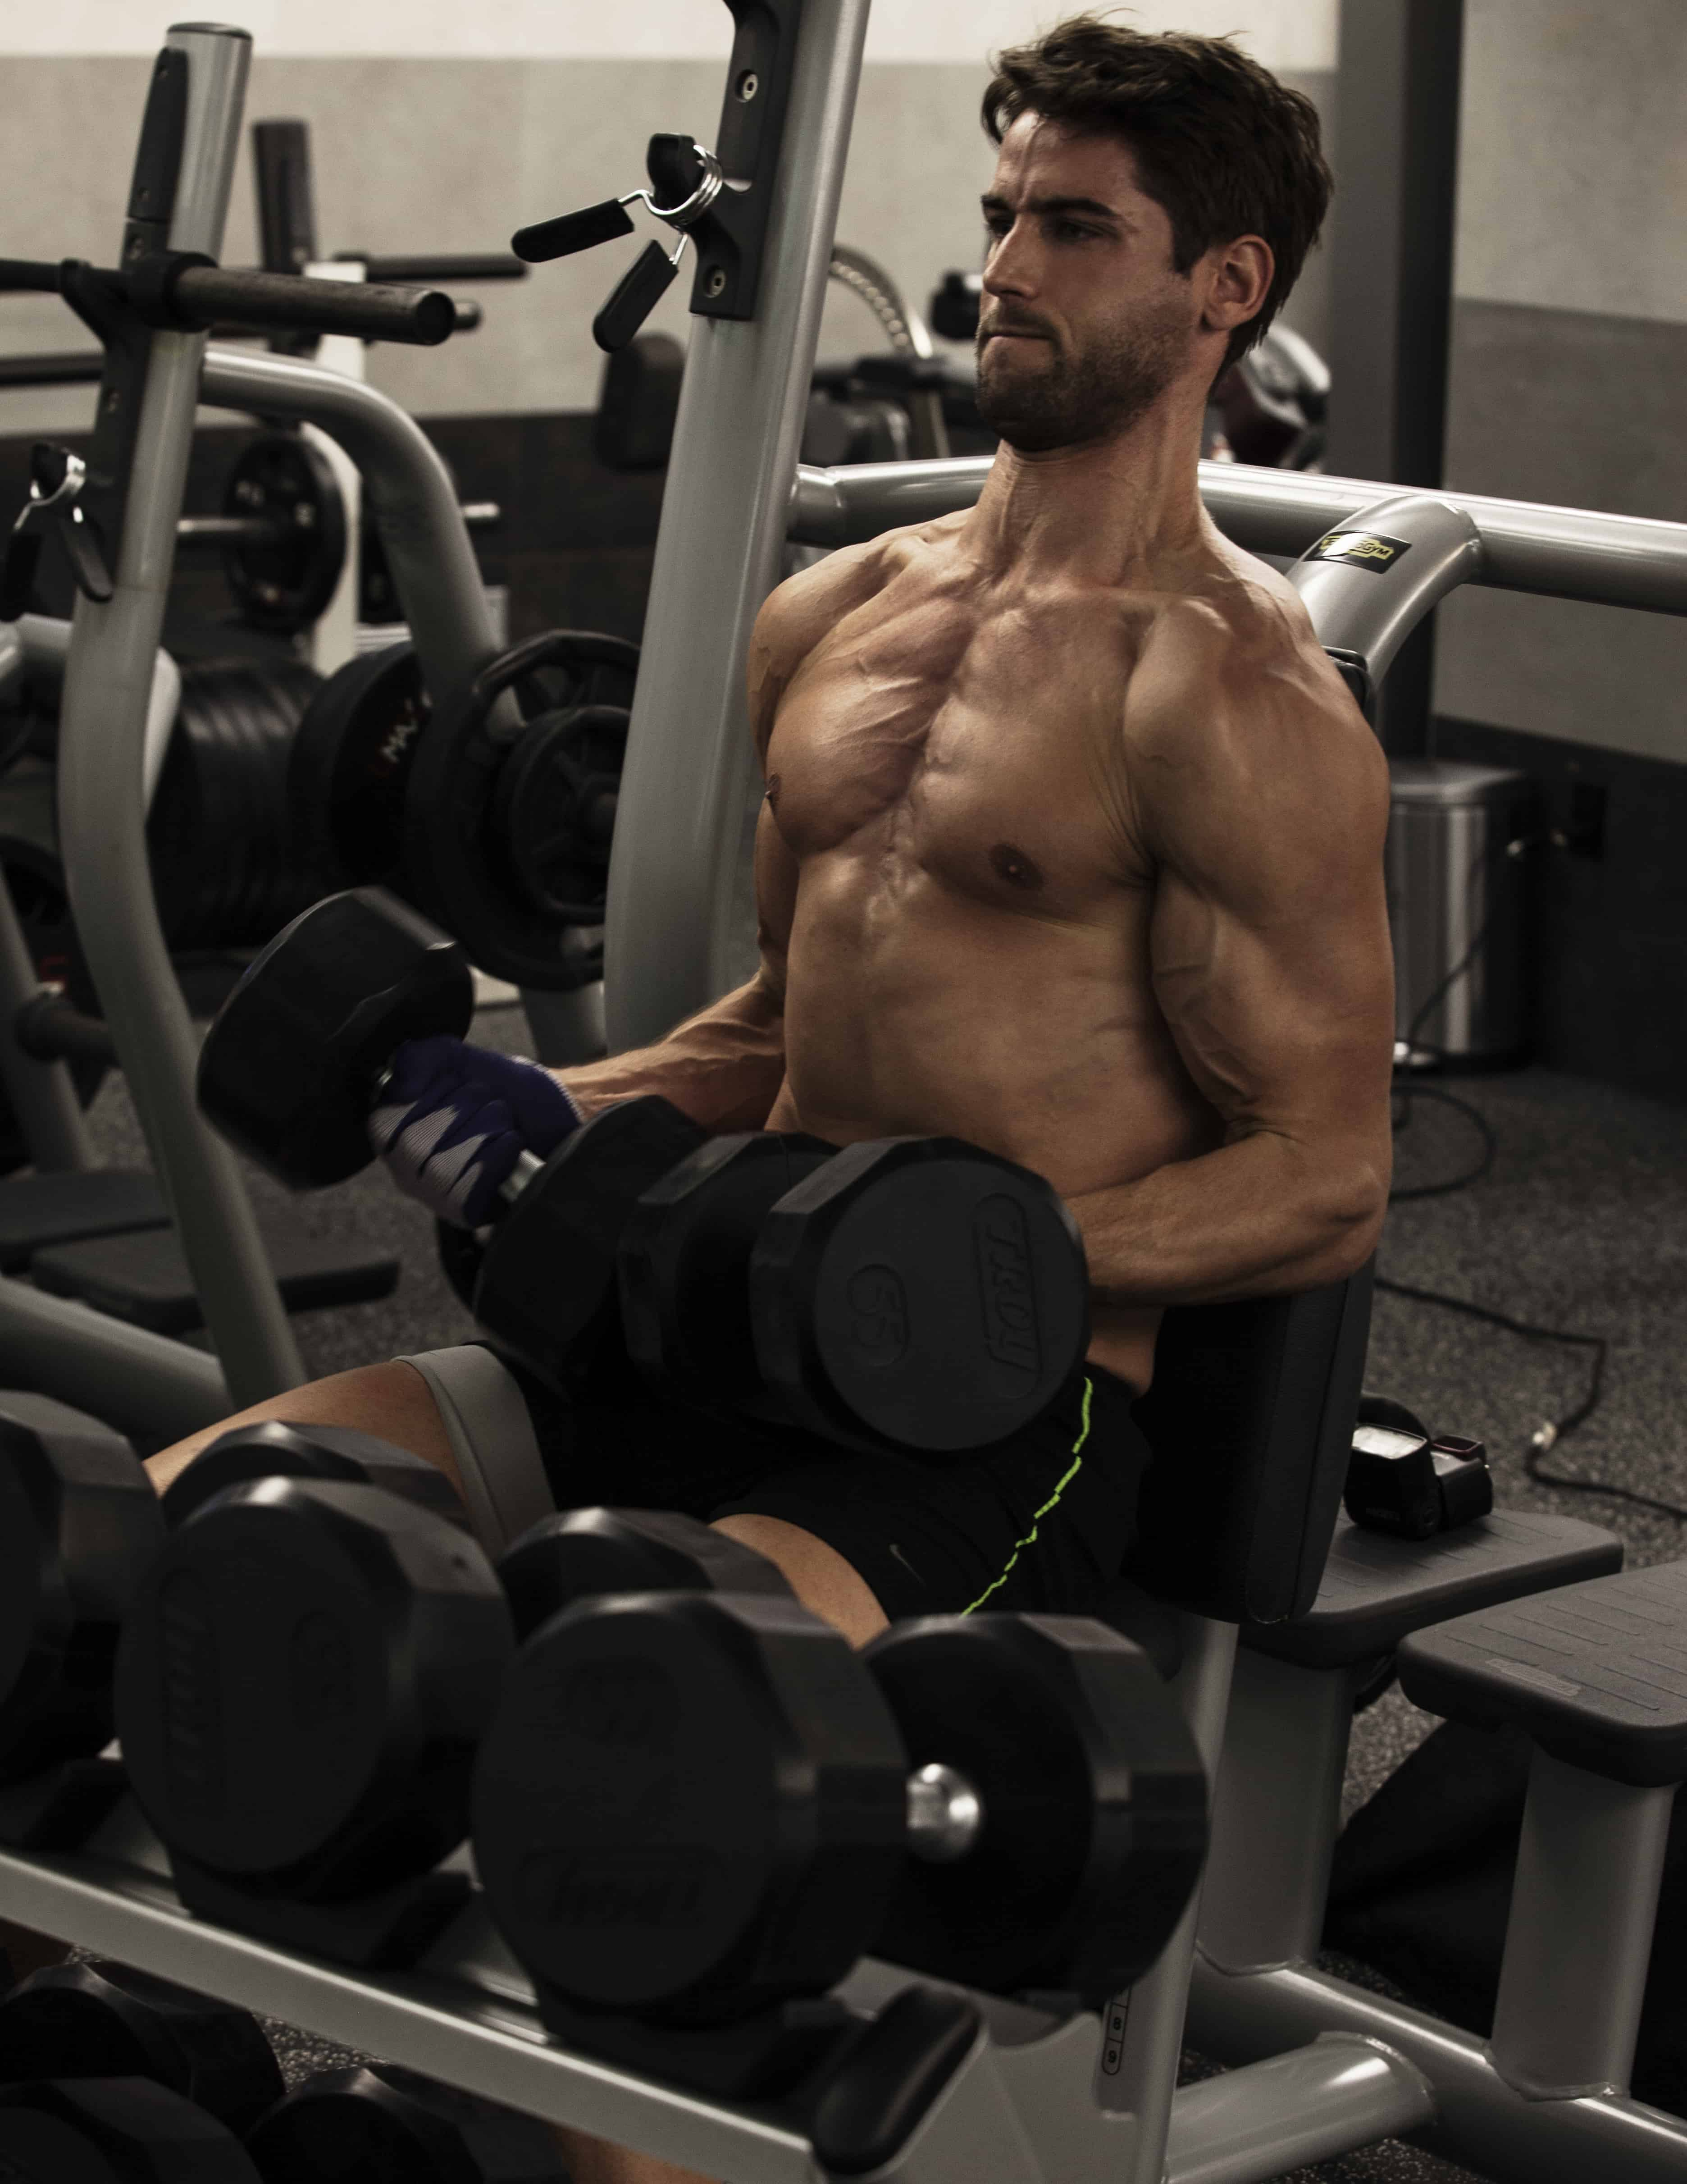 The complete guide to building muscle